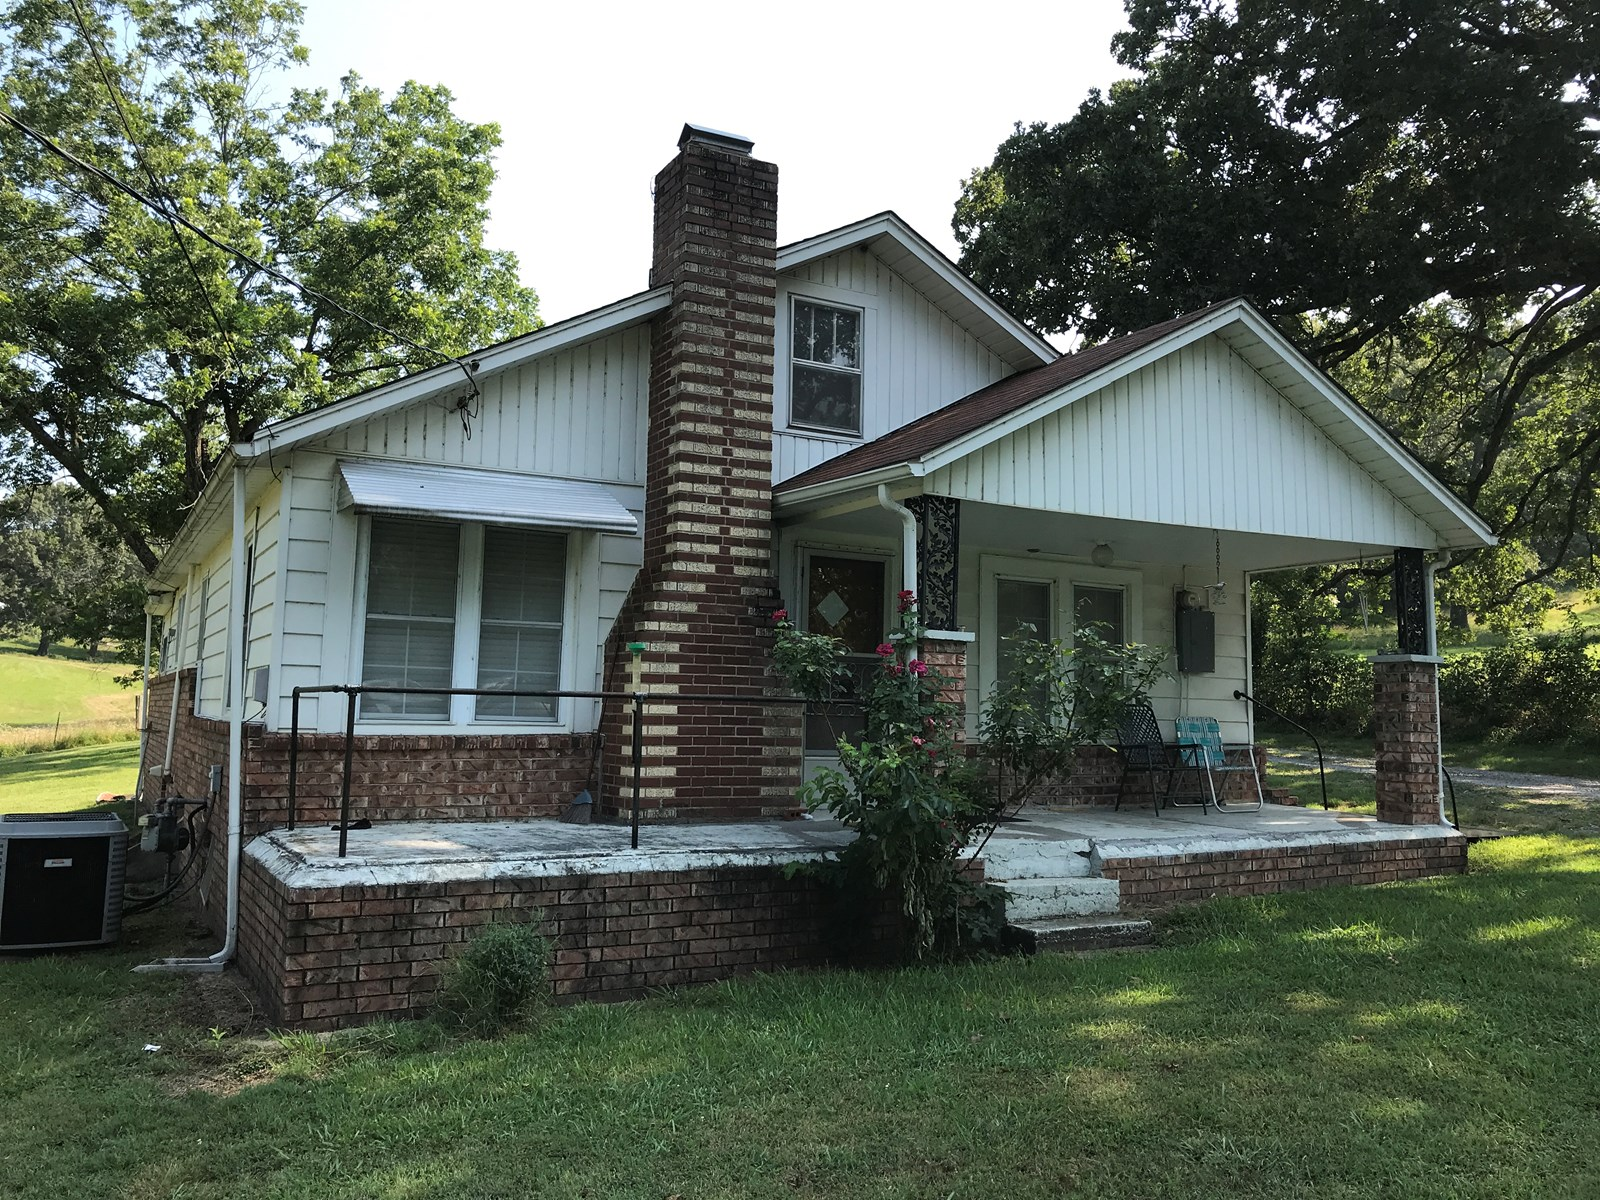 Country Home in Arkansas near Eleven Pt. River on 1 acre m/l